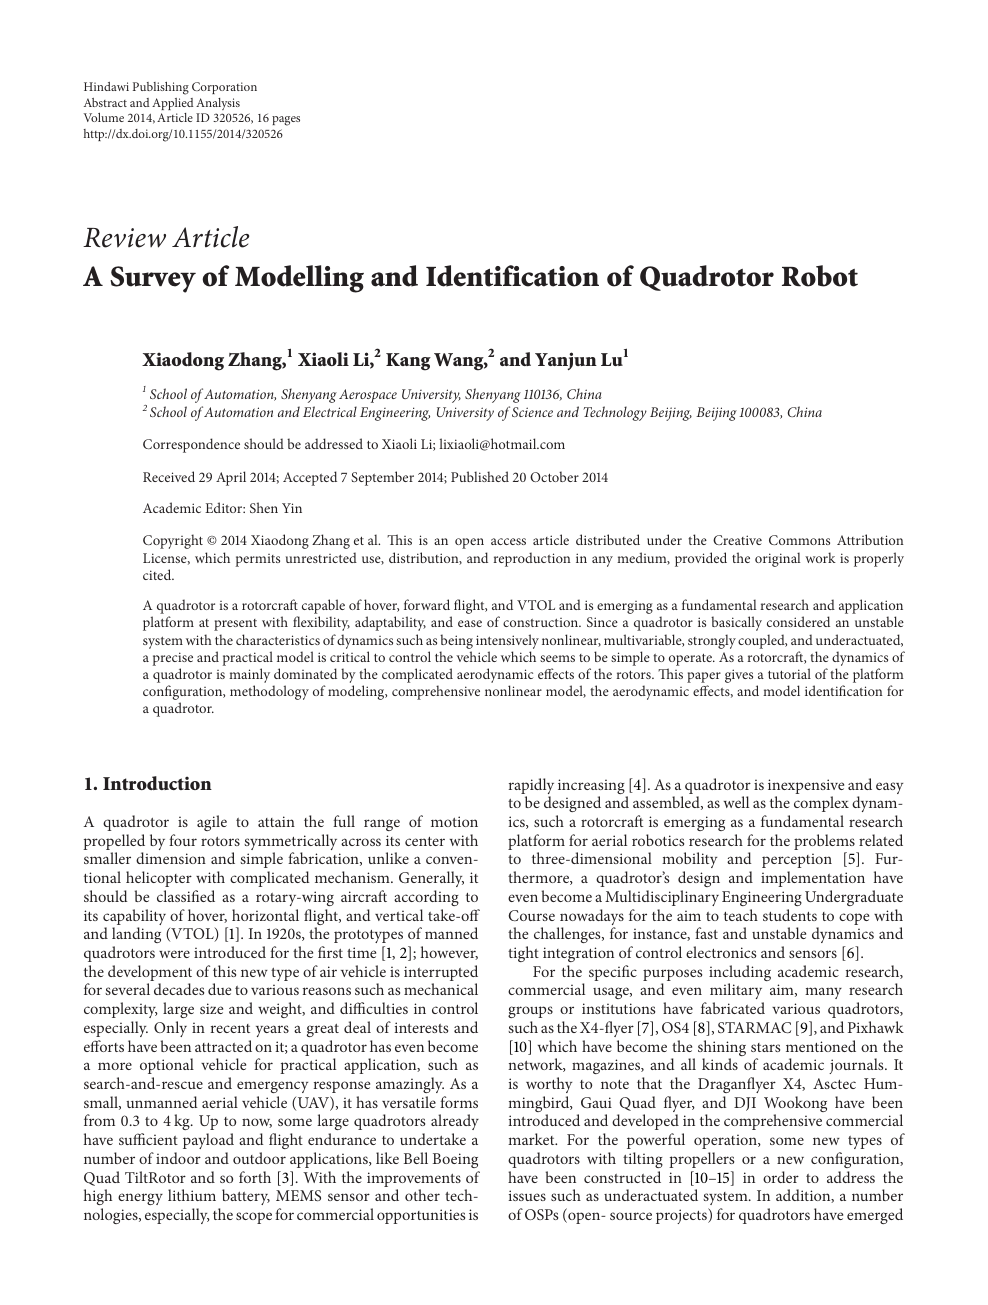 A Survey Of Modelling And Identification Quadrotor Robot Topic. Read Paper. Wiring. Electric Pto Switch Wiring Diagram 6 Poll At Scoala.co